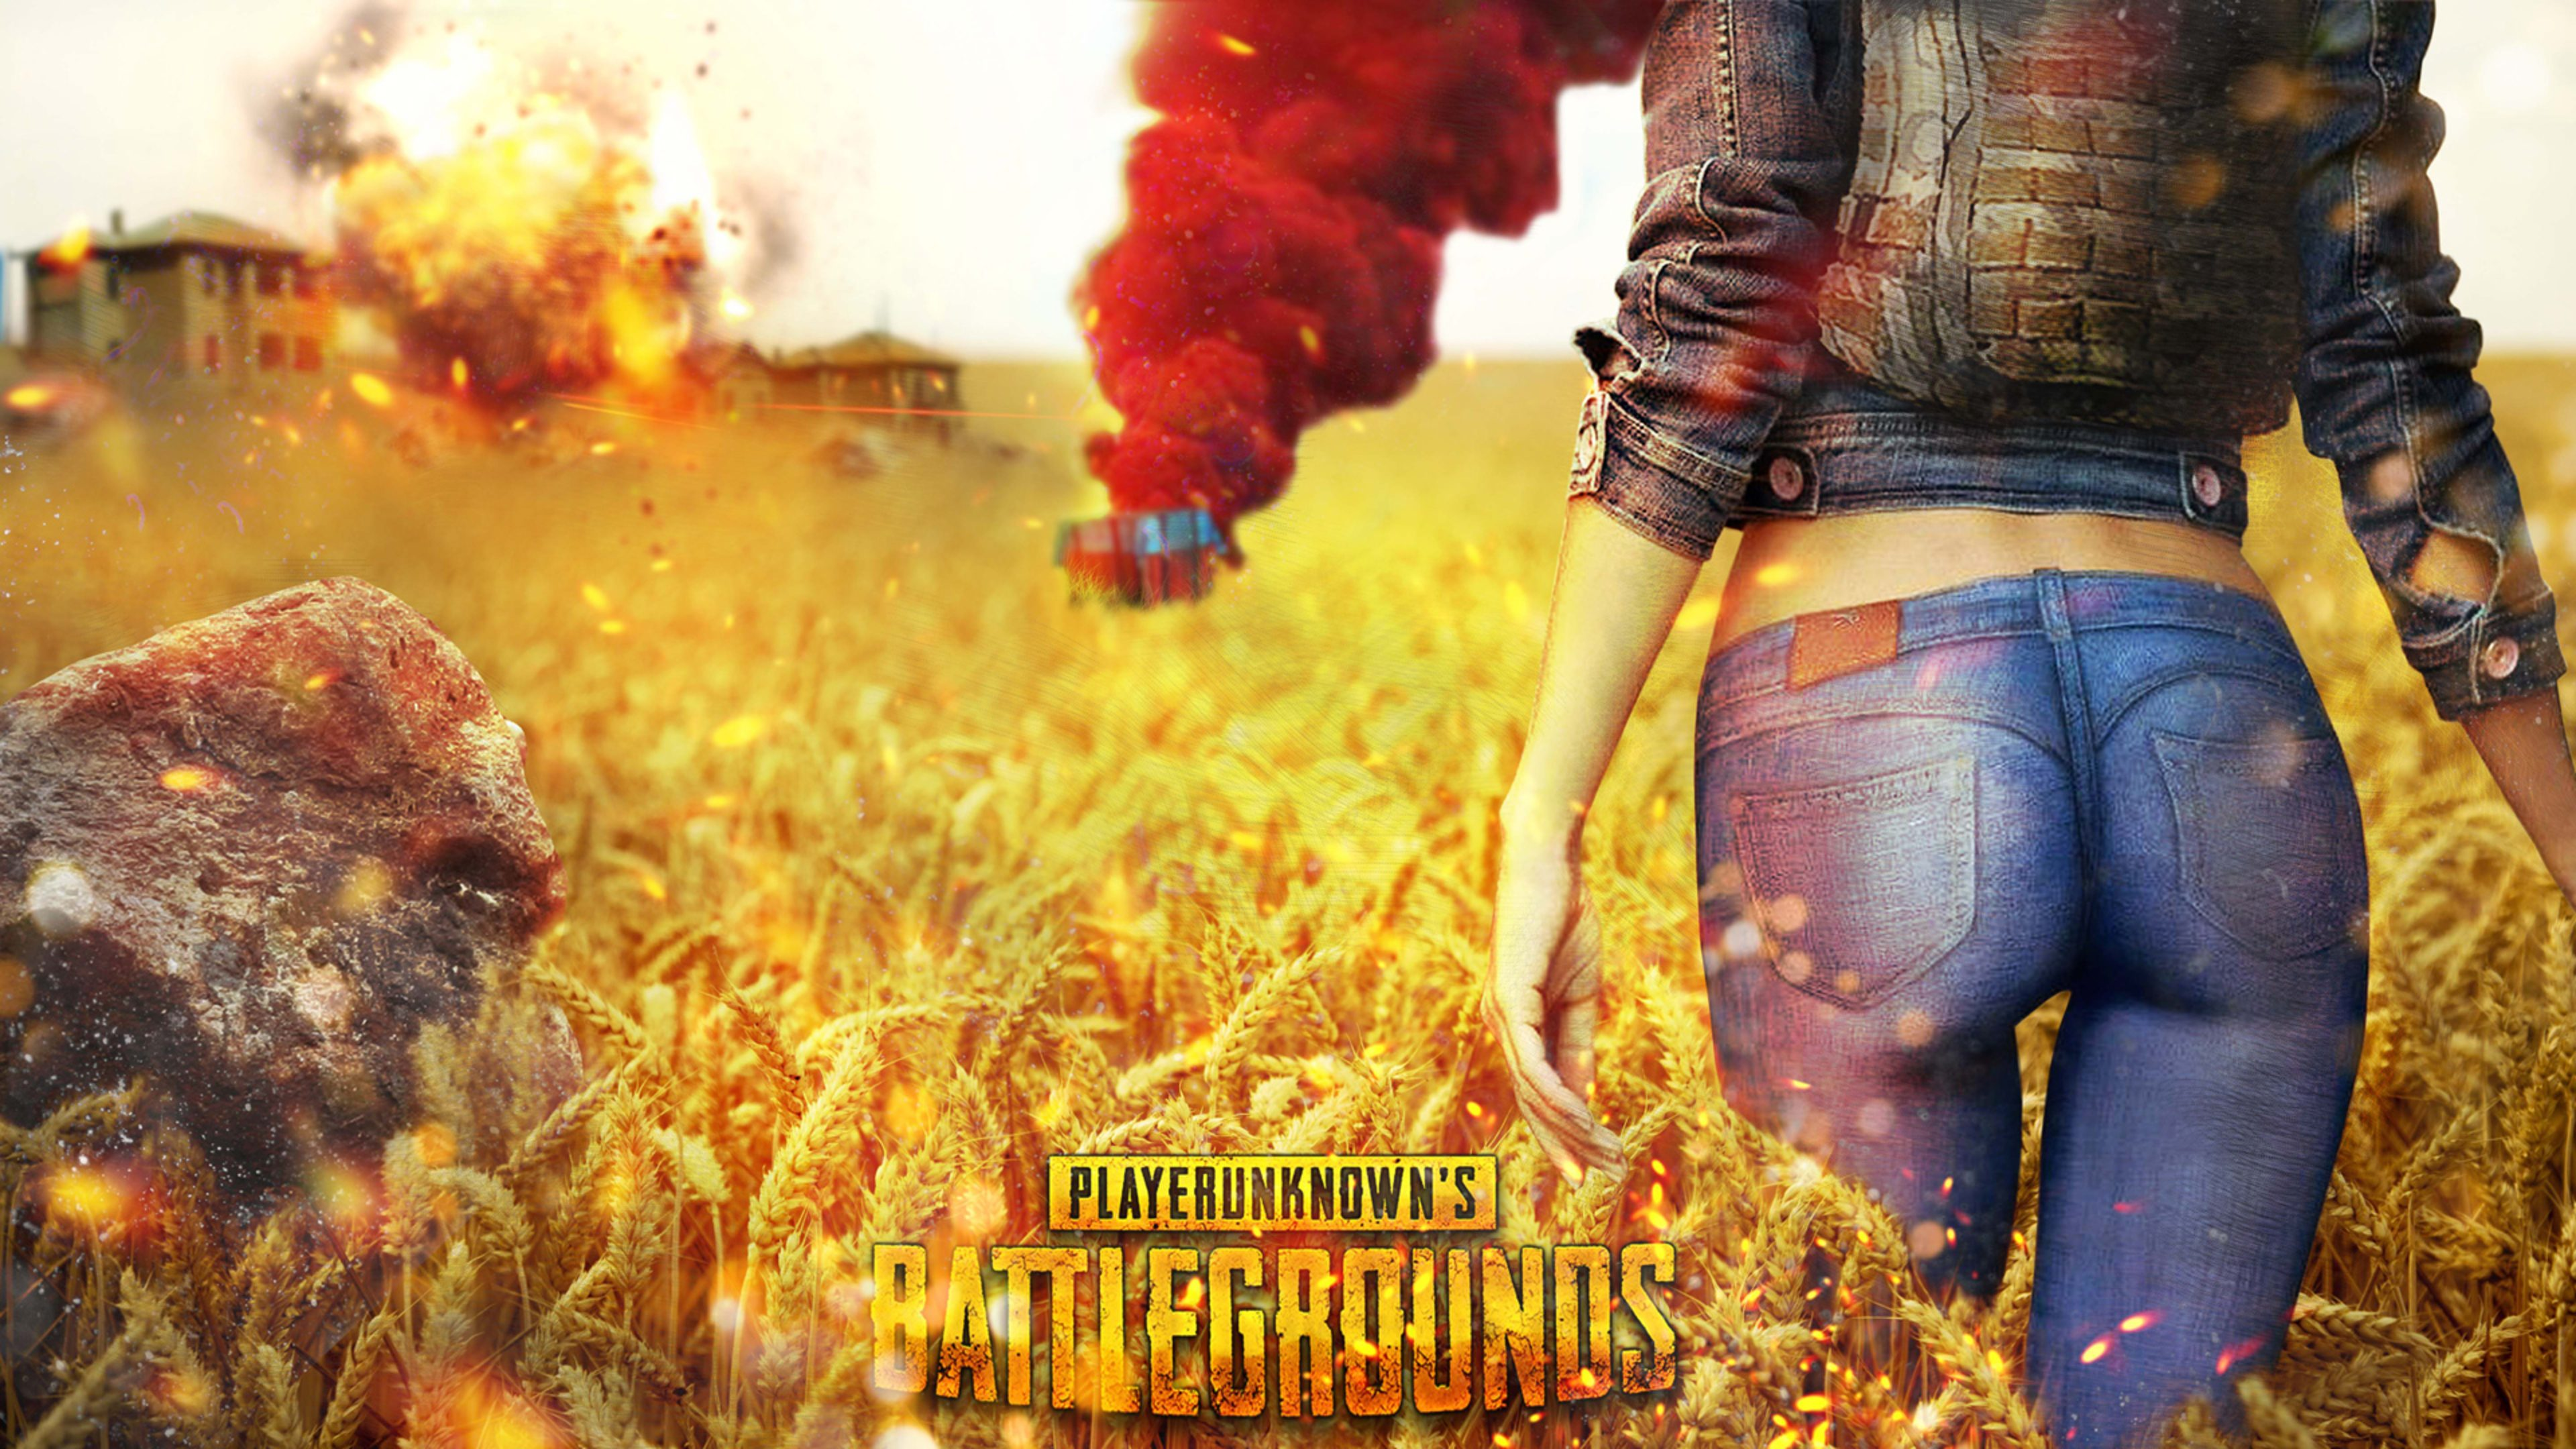 Pubg Ultra Hd Wallpapers: Playerunknowns Battlegrounds PUBG Cover 4K Wallpaper